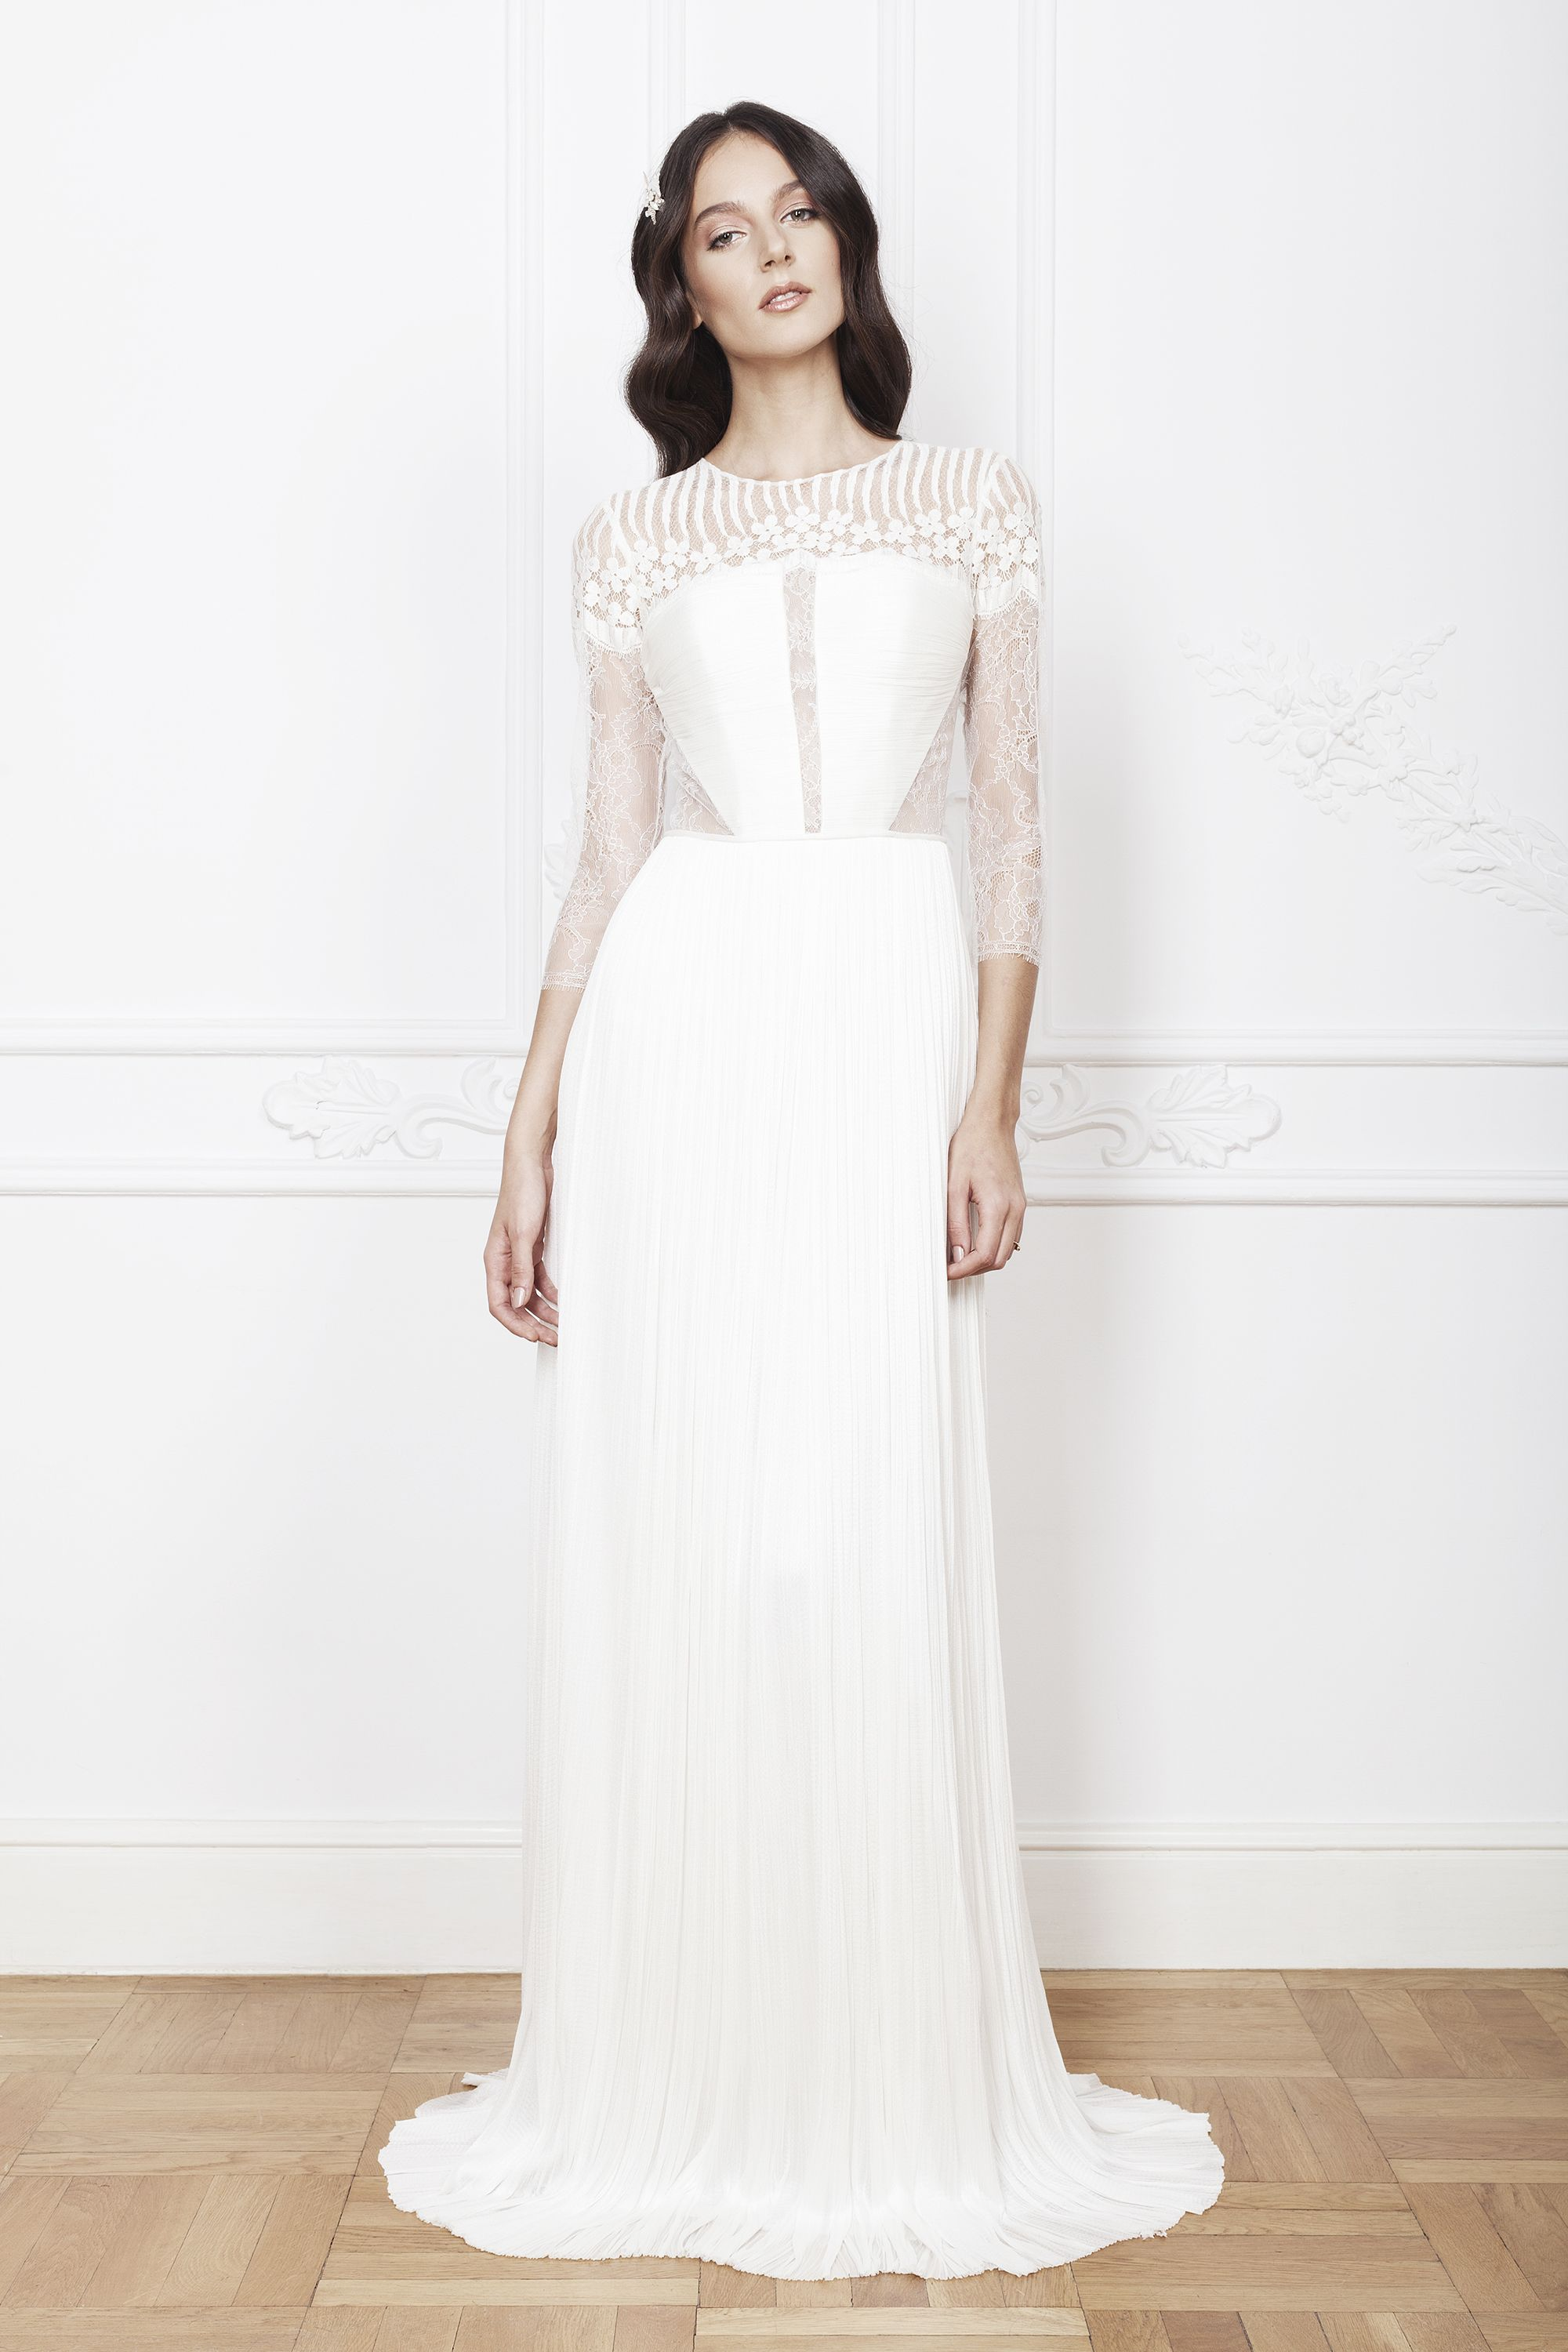 Cut out lace wedding dress  The geometrical details of the corsage the refinement of the lace